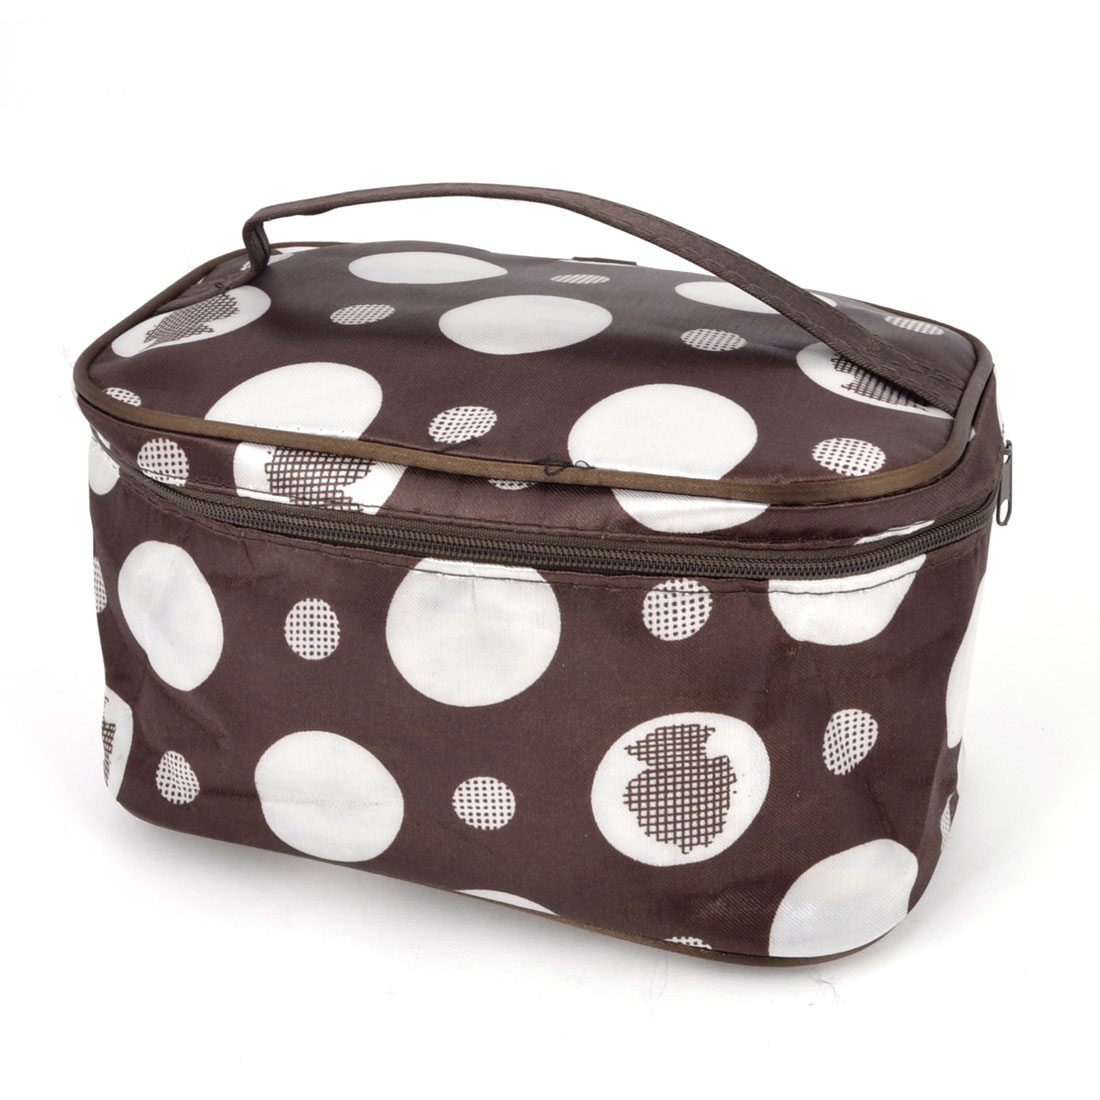 Lady Zipper Closure Dot Printed Cosmetic Bag Make Up Pouch Case Brown White